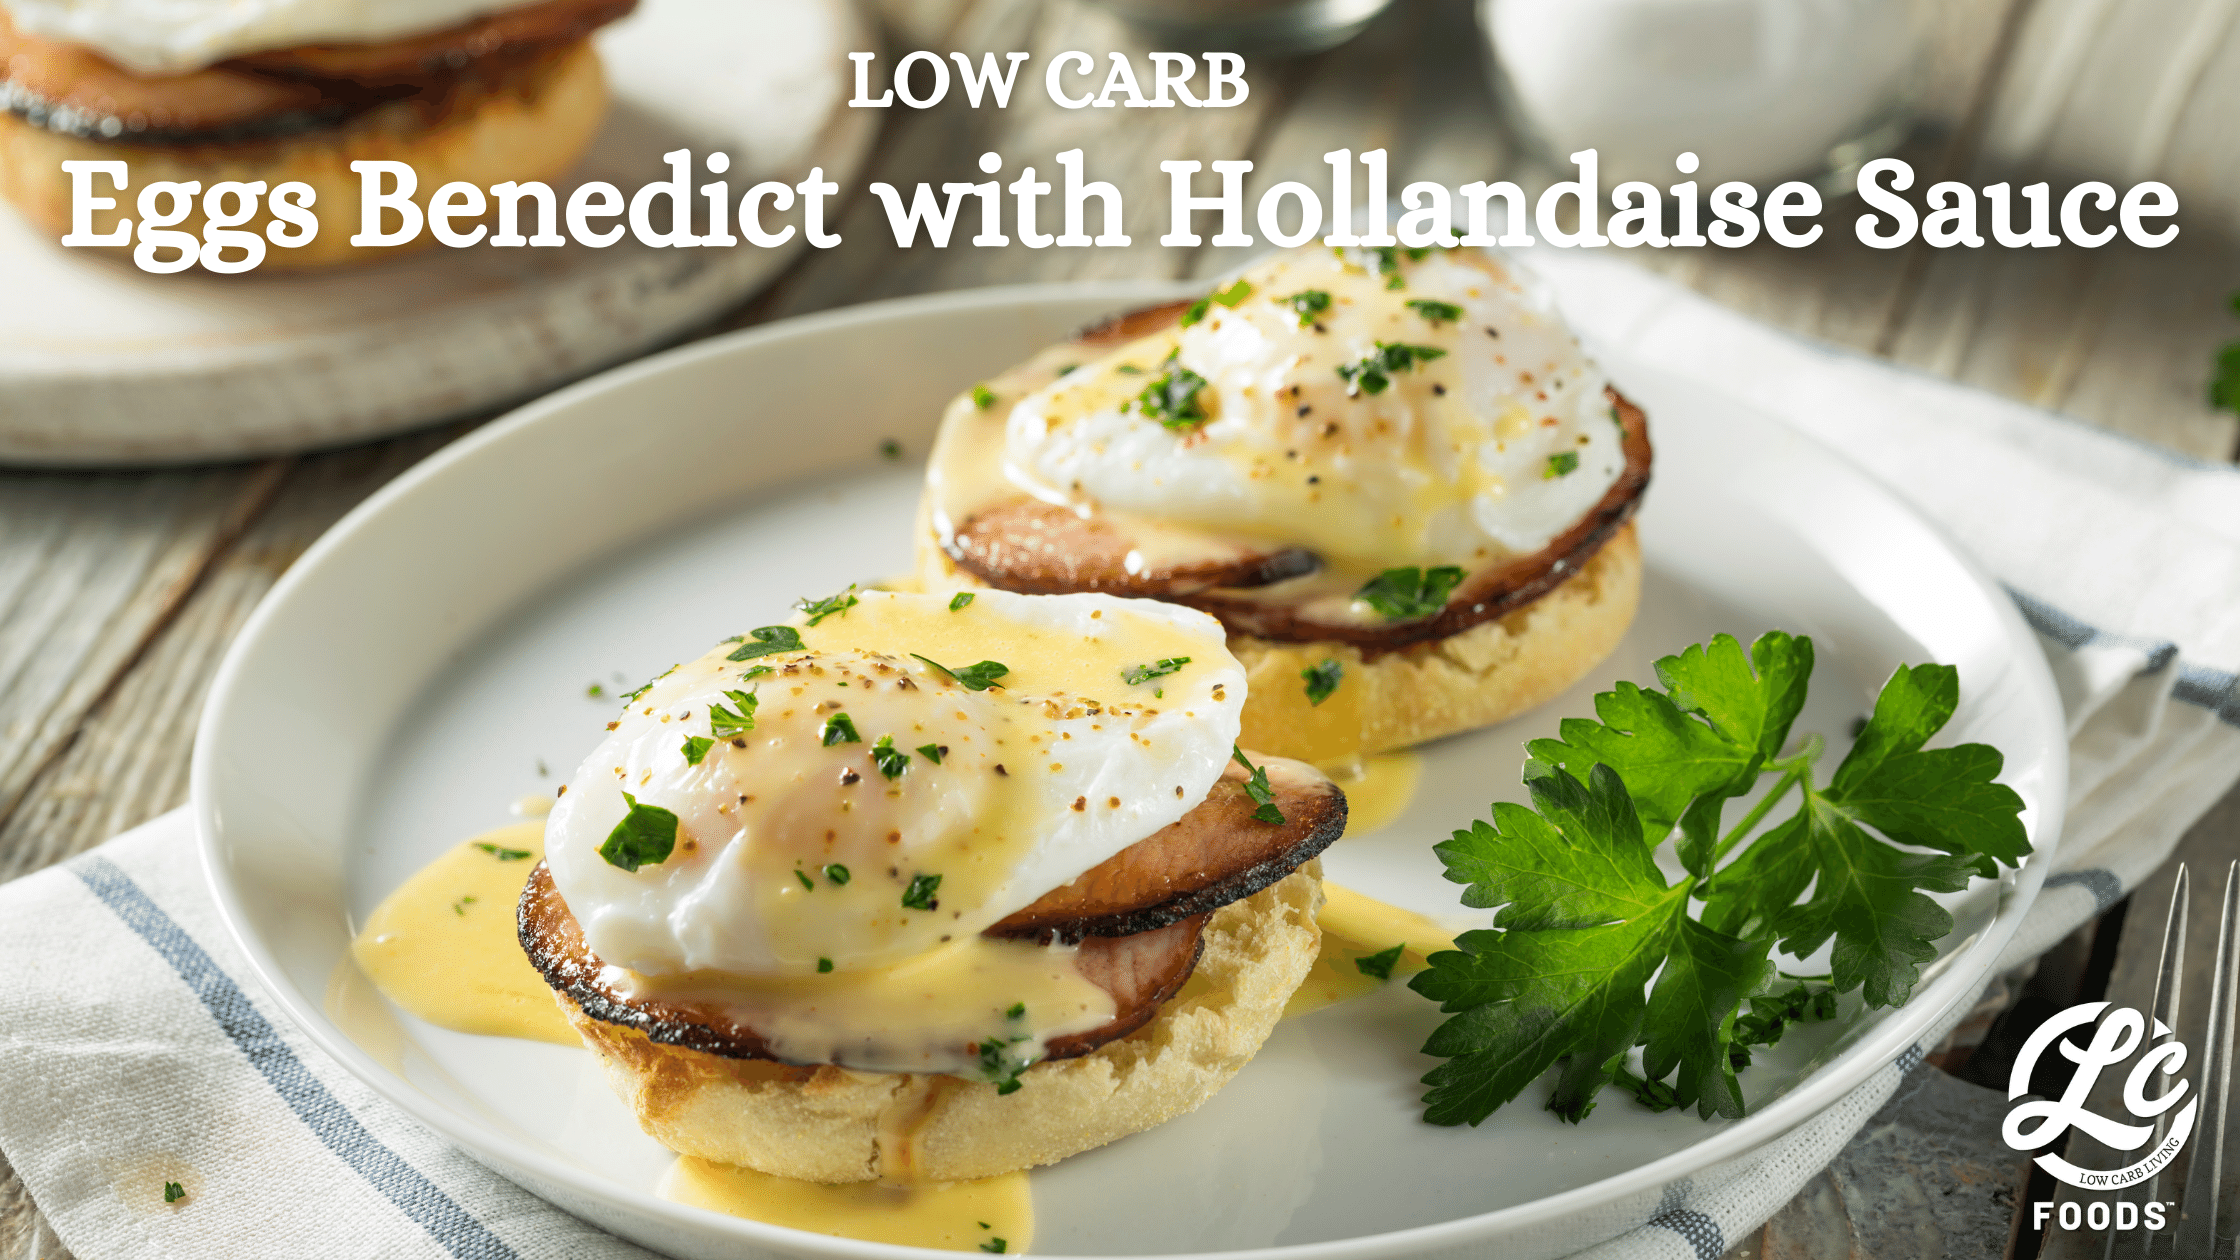 Thumbnail for Low Carb Eggs Benedict with Hollandaise Sauce